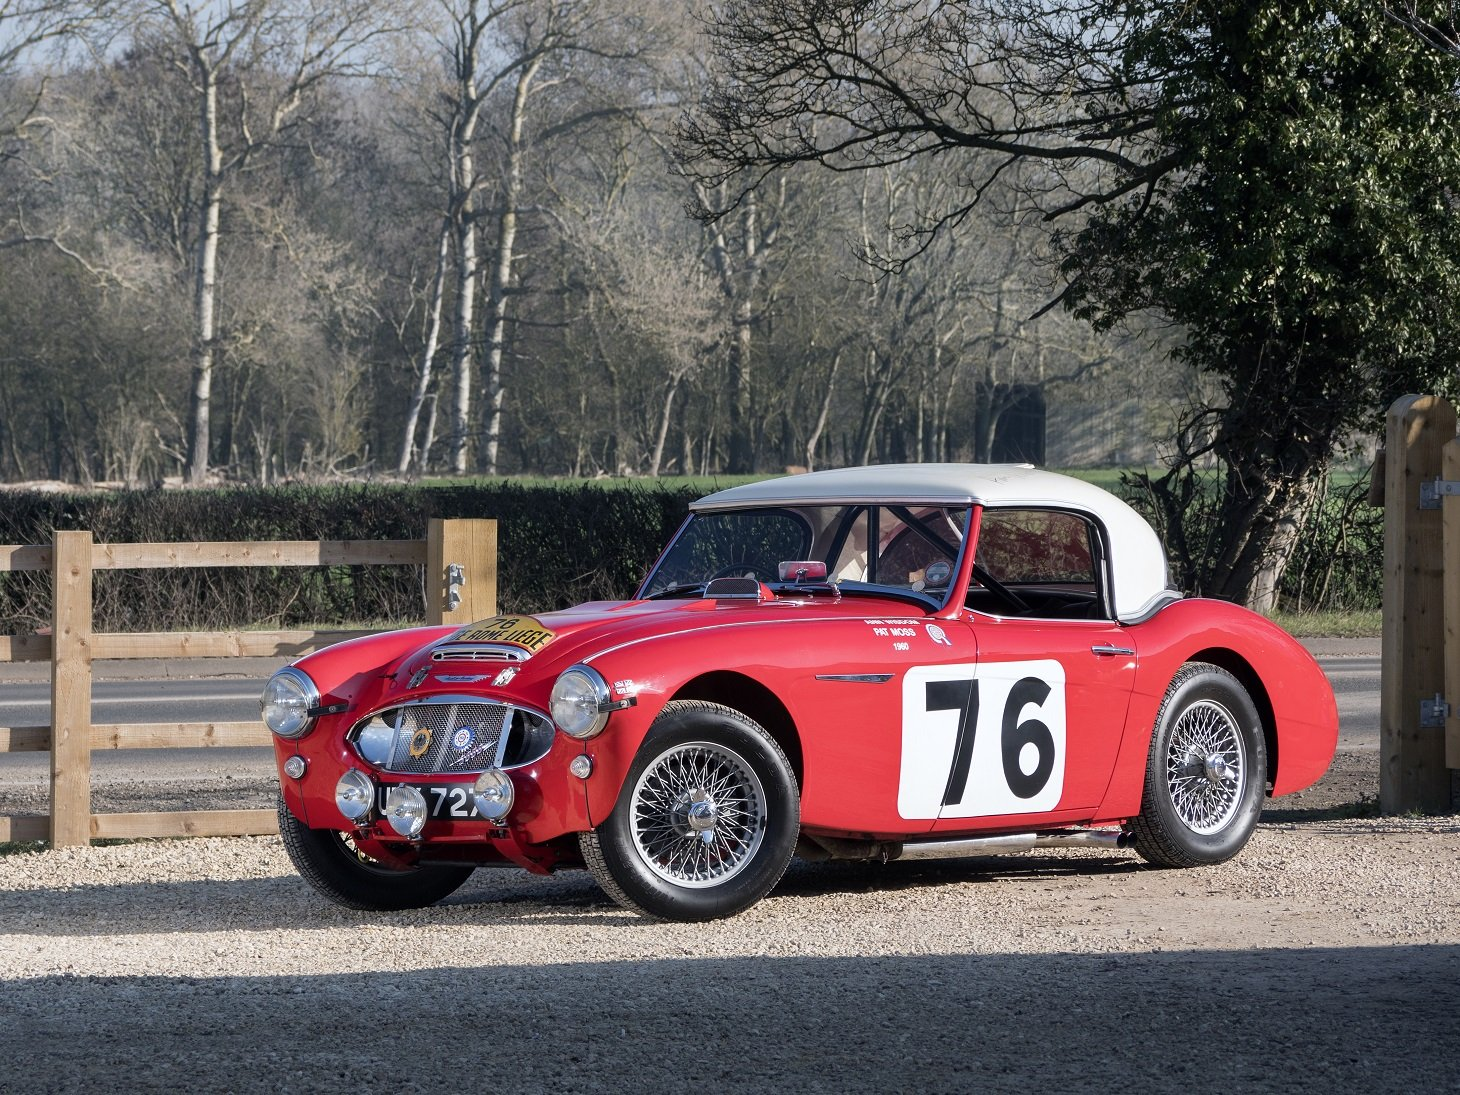 The ex-Works, Moss/Wisdom, 1960 Liege-Rome-Liege Winning car For Sale (picture 2 of 6)